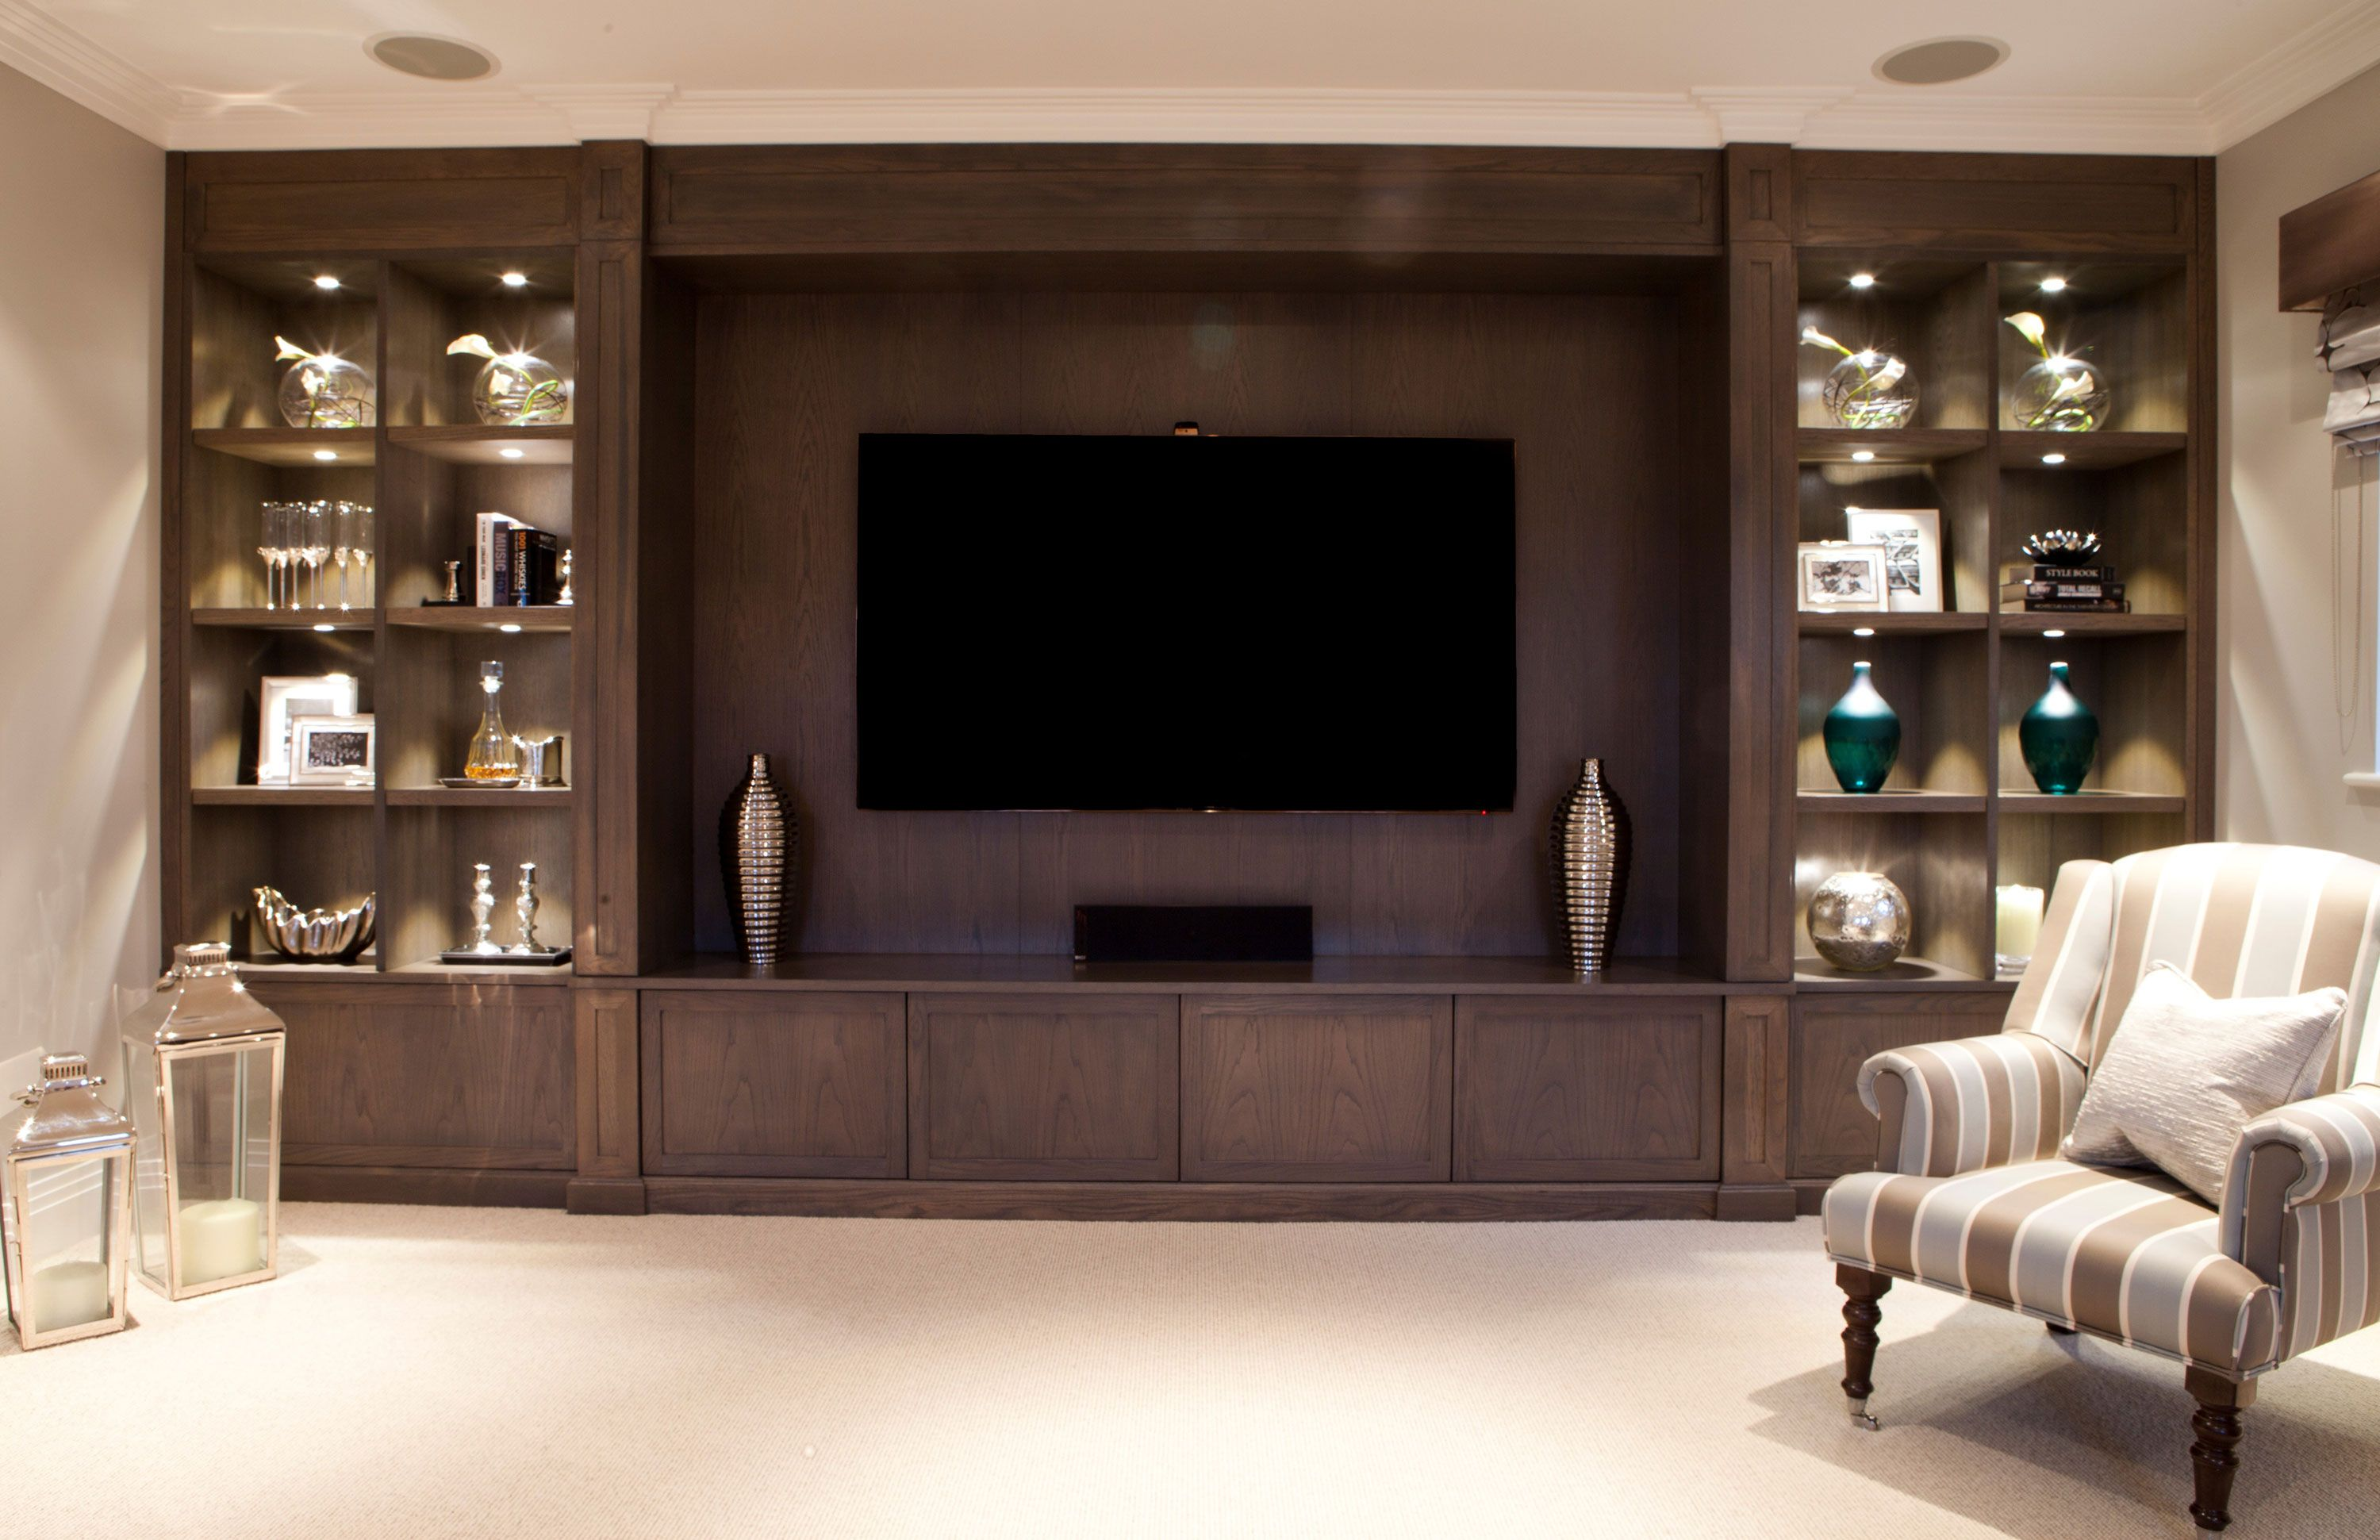 This family home required bespoke fitted furniture in multiple